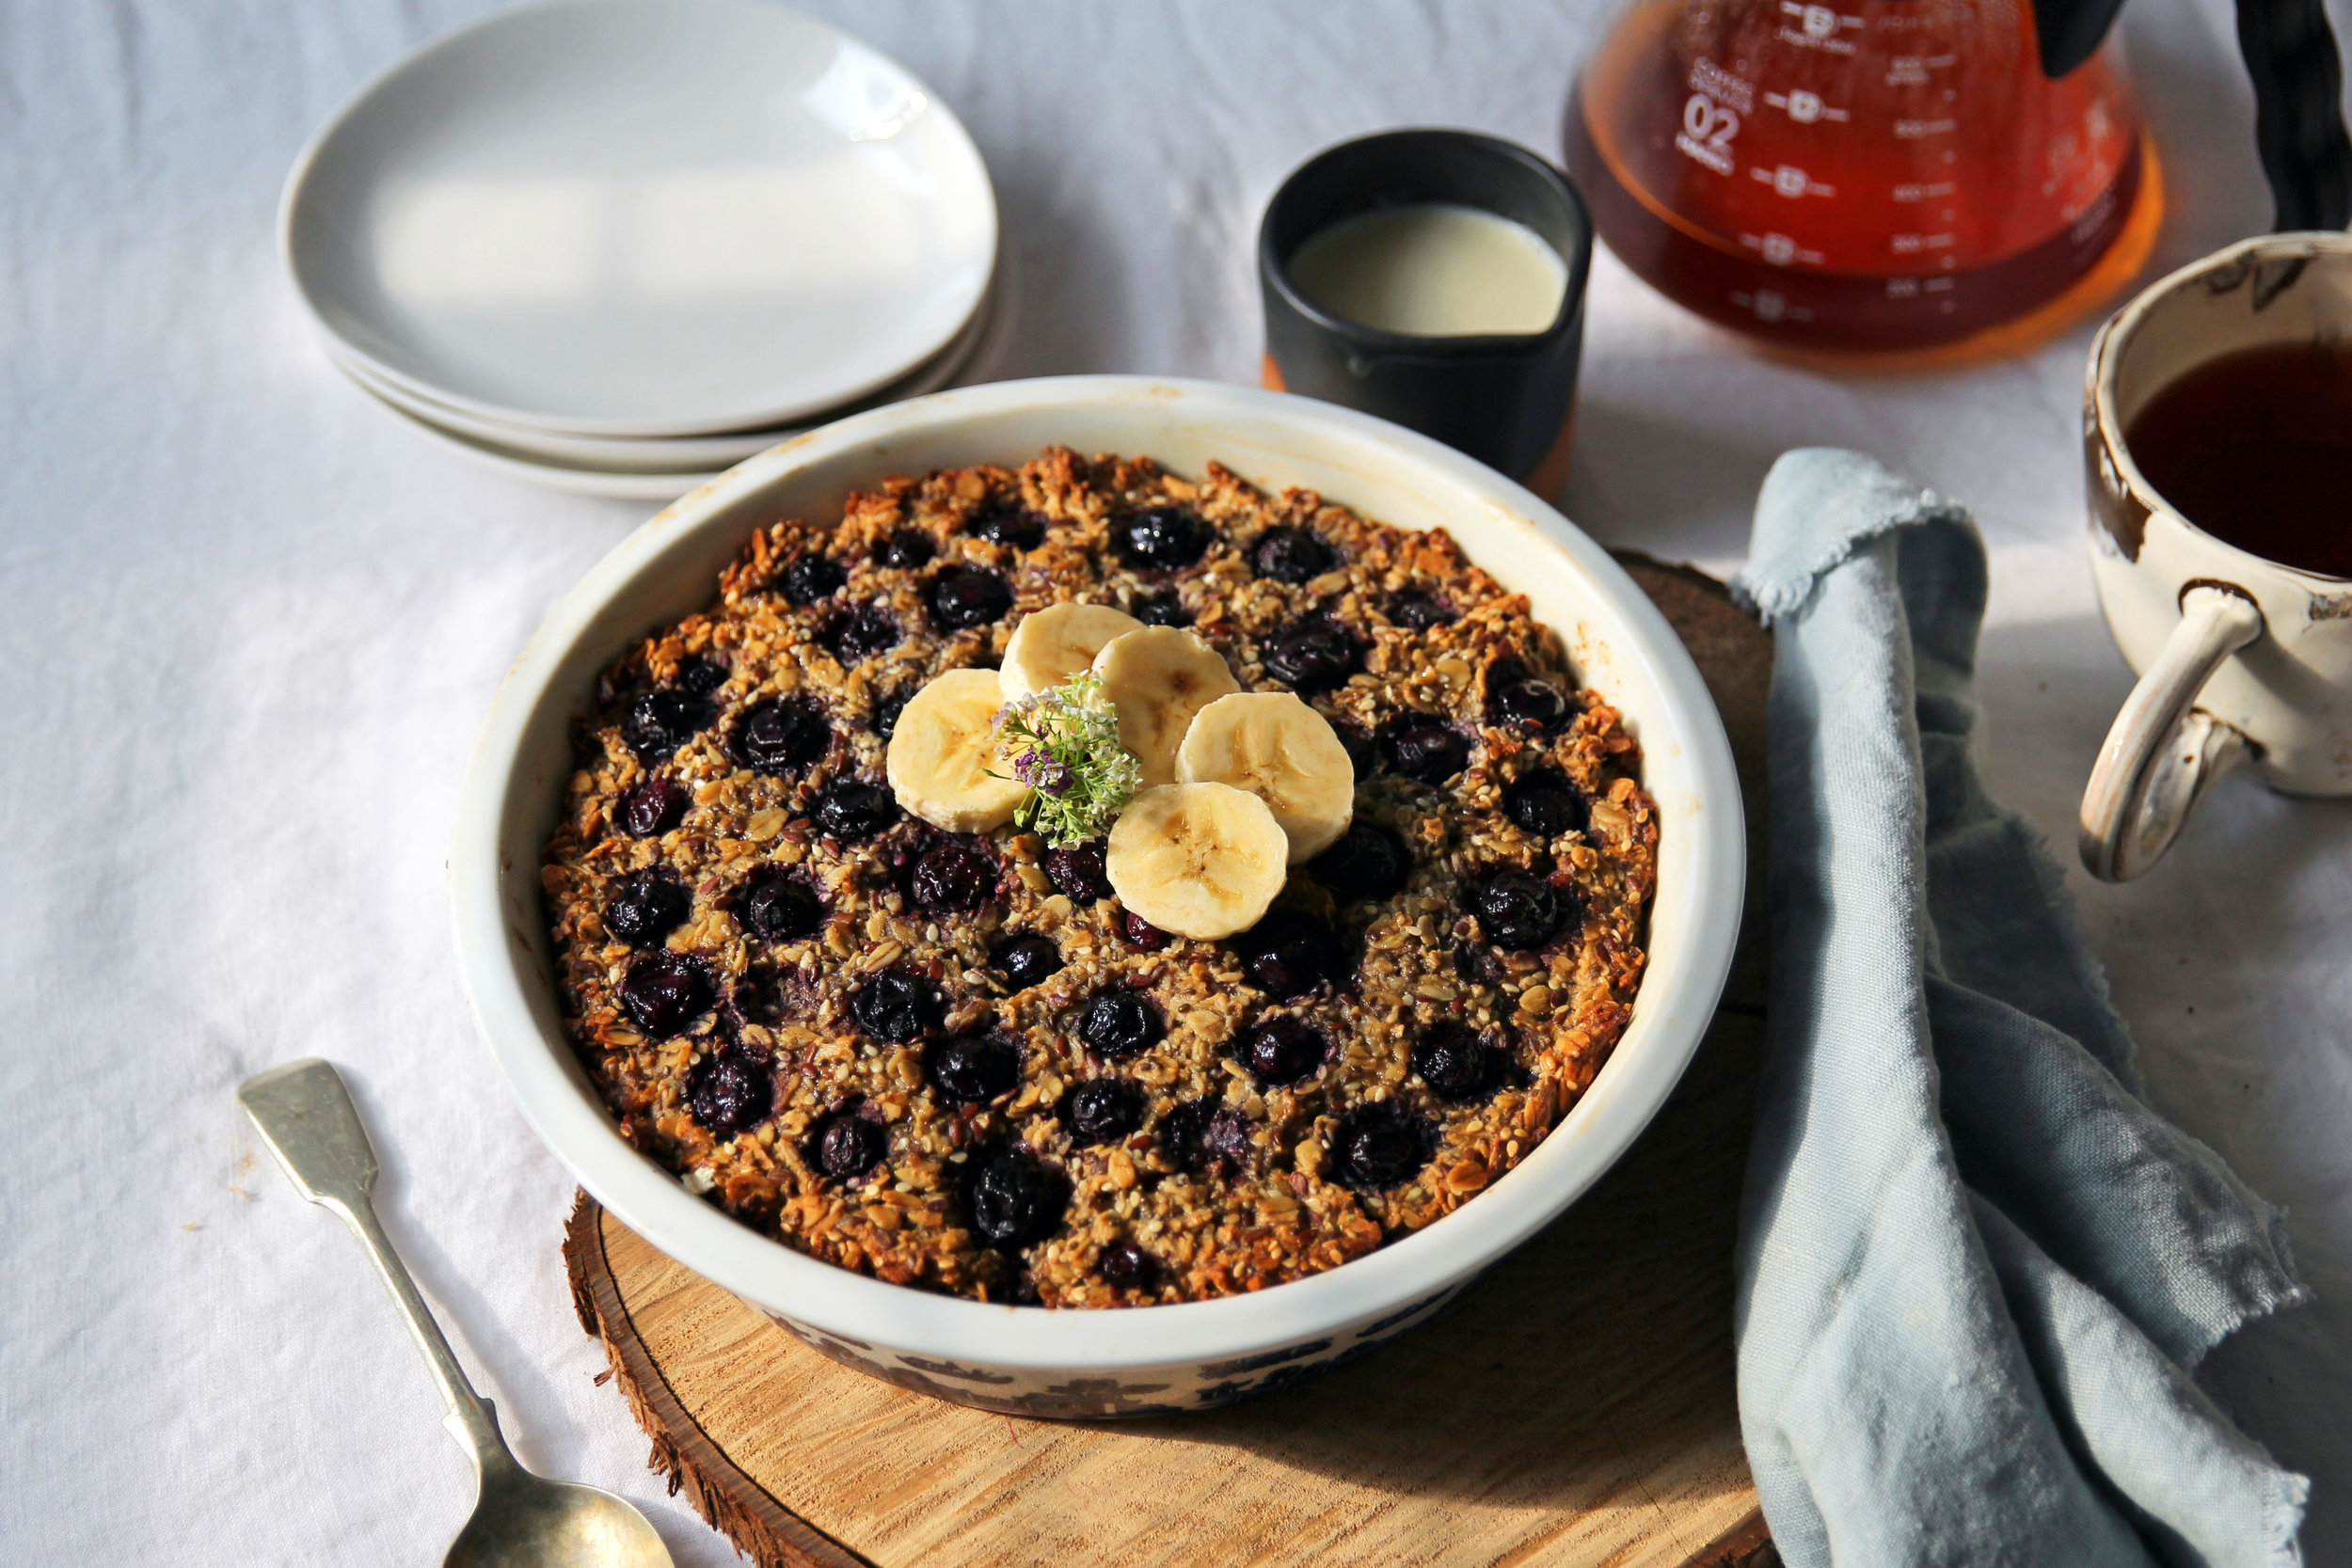 ALL GOOD_Low Res_banana baked oatmeal3.jpg